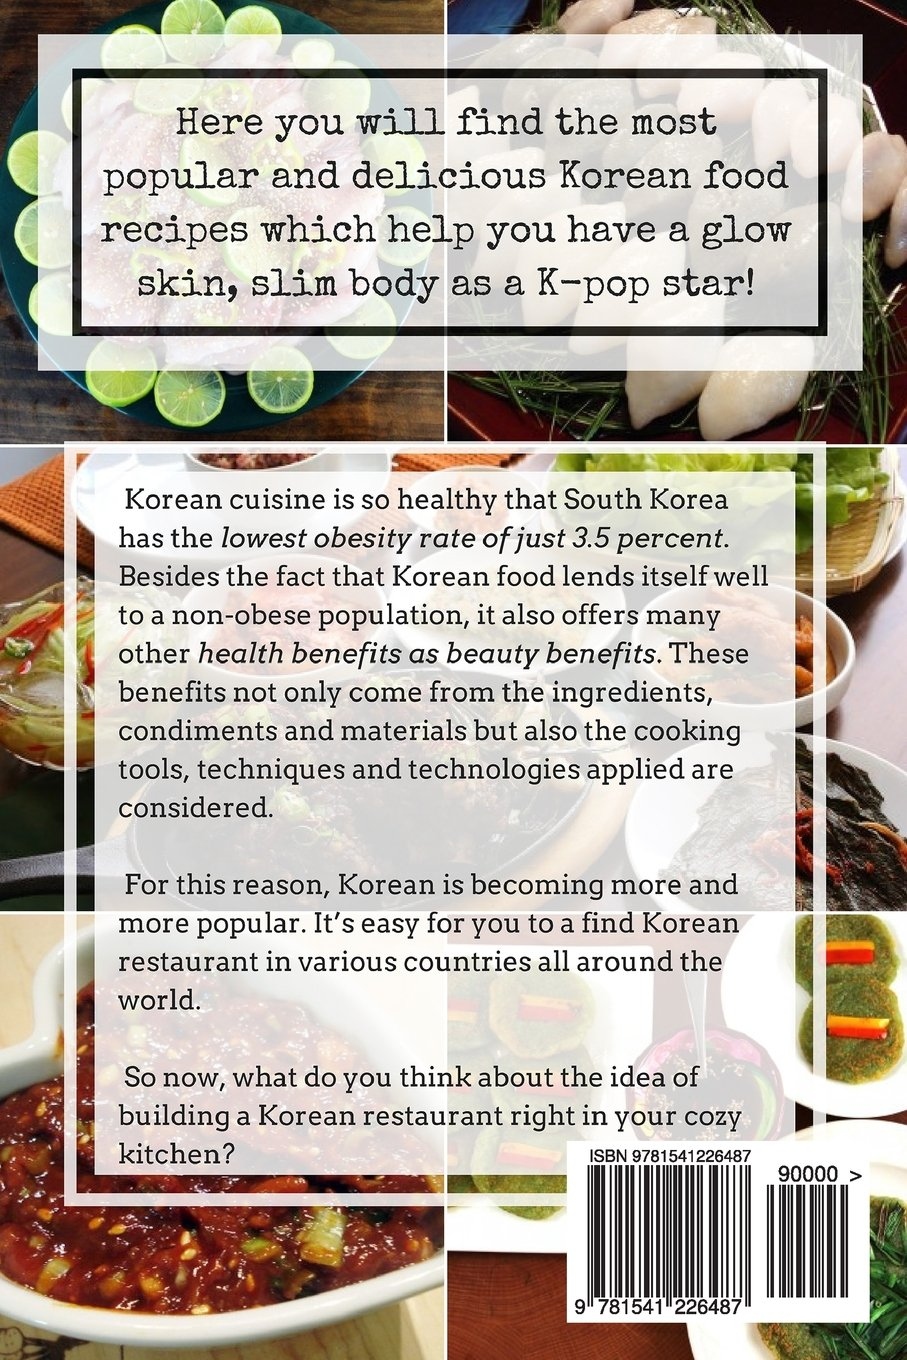 Amazon welcome to korean food world unlock every secret of amazon welcome to korean food world unlock every secret of cooking through 500 amazing korean recipes korean cookbook korean cuisine korean cooking forumfinder Image collections